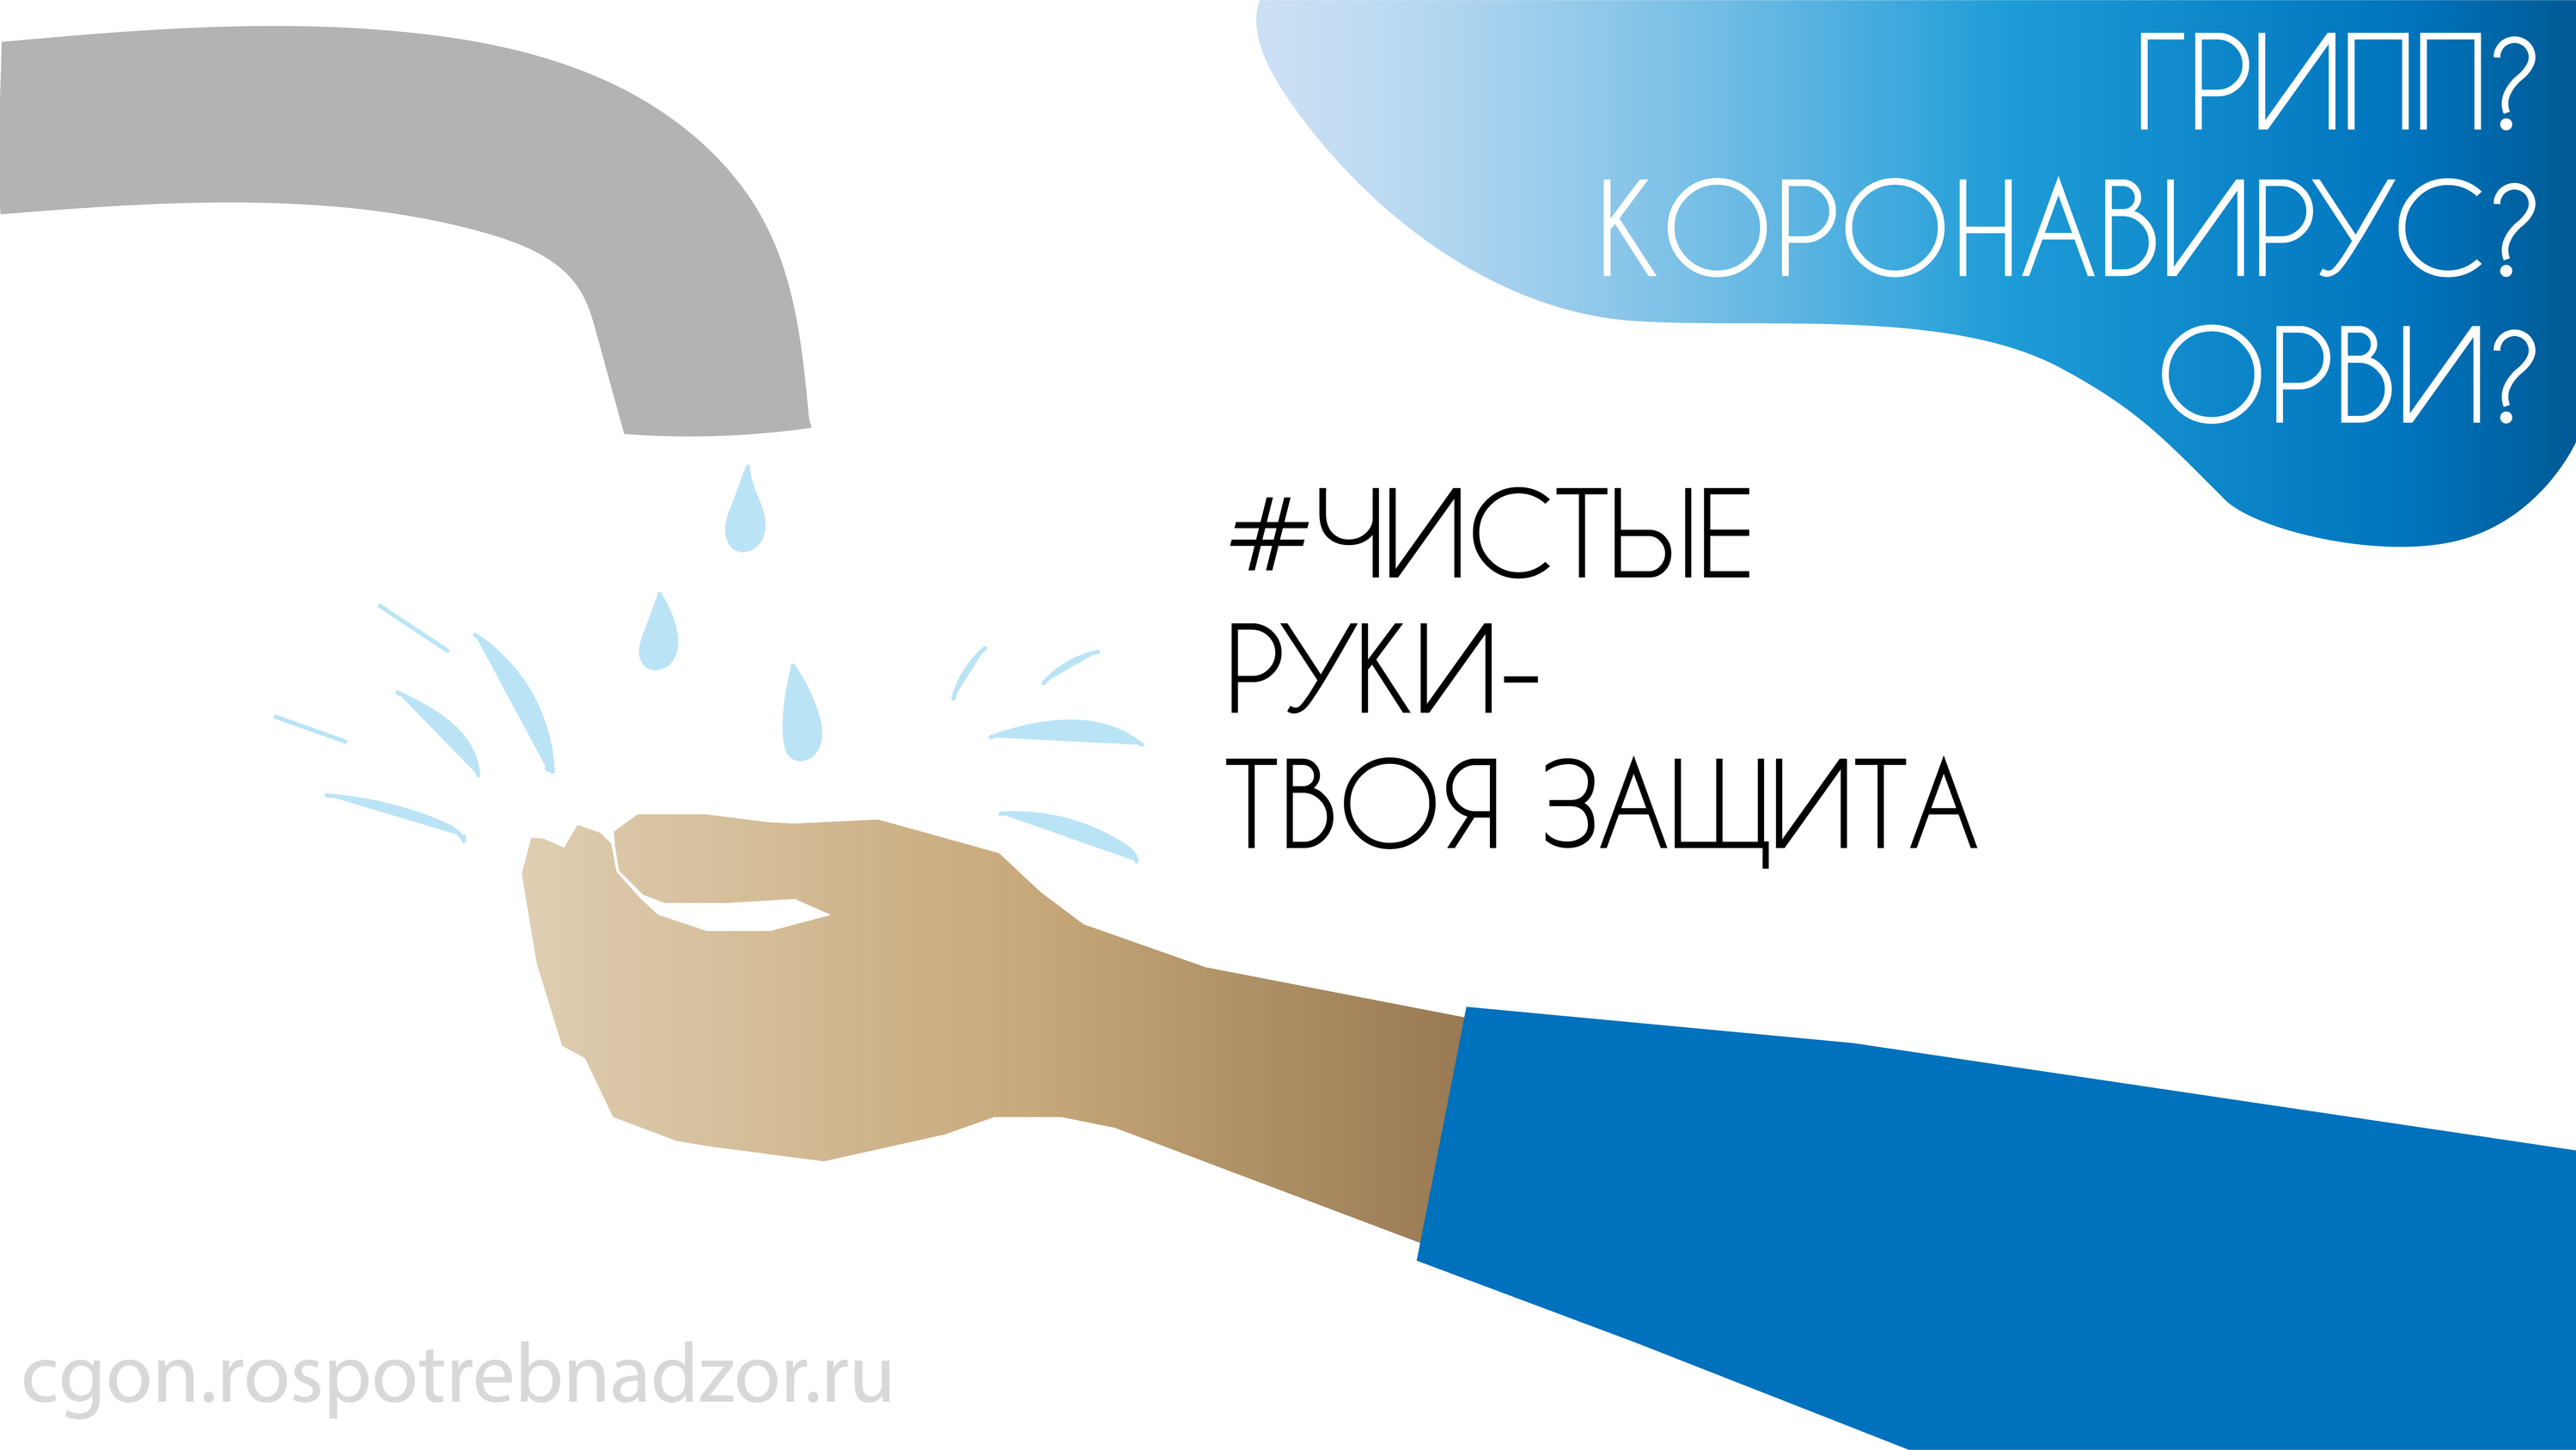 http://shkola-i-my.ucoz.ru/SLUZHBI_OO/688101c33bb82f2774e97f692fbb23eb.png